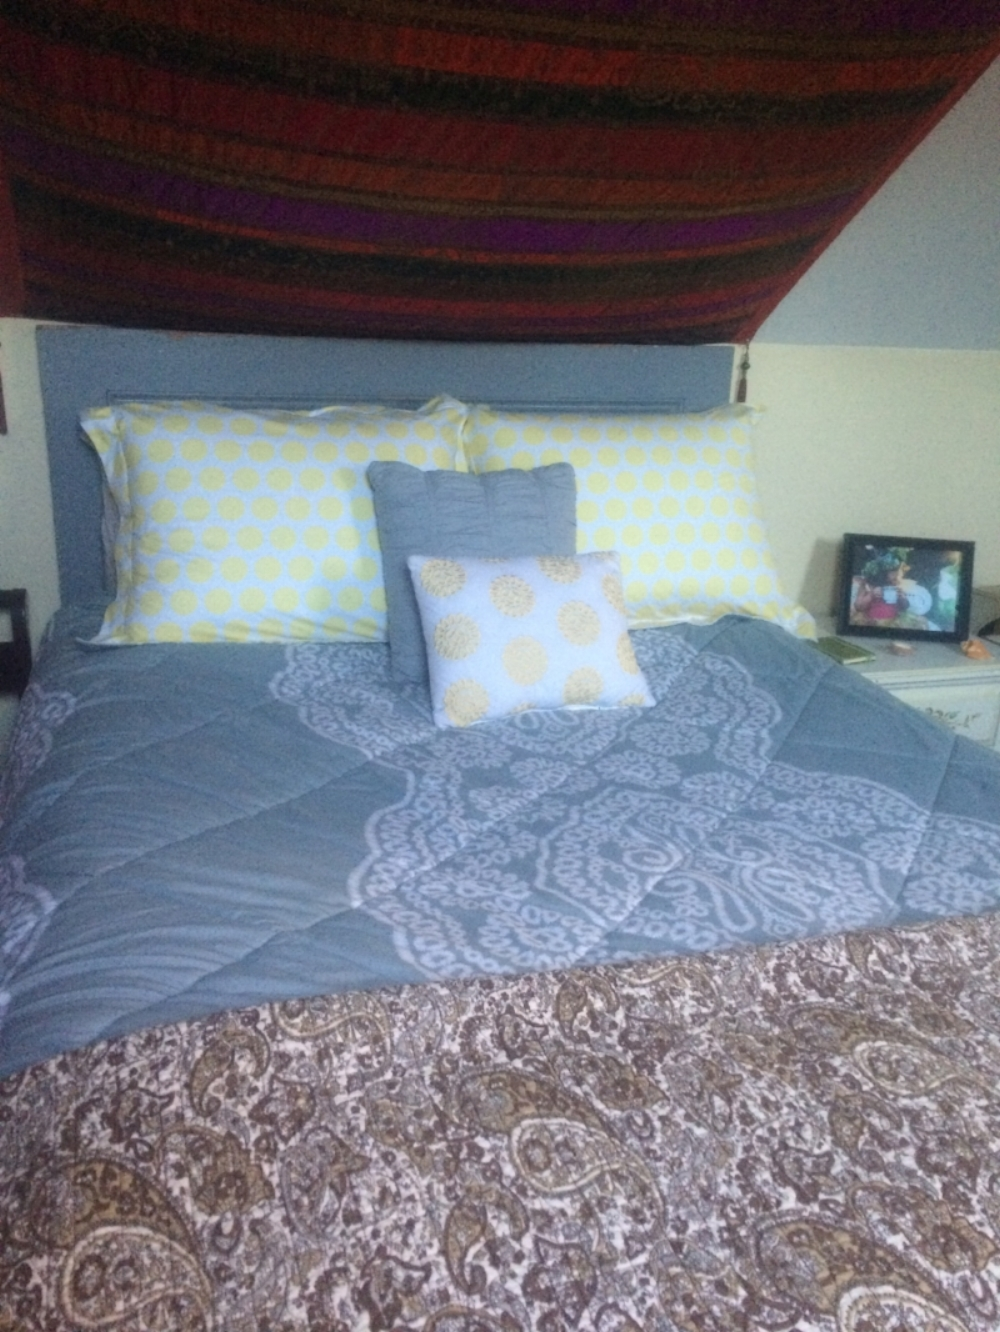 Consultation: - After adding a headboard to her bed, this client experienced phenomenal positive occurrences in her life in the areas of love, business, and health.